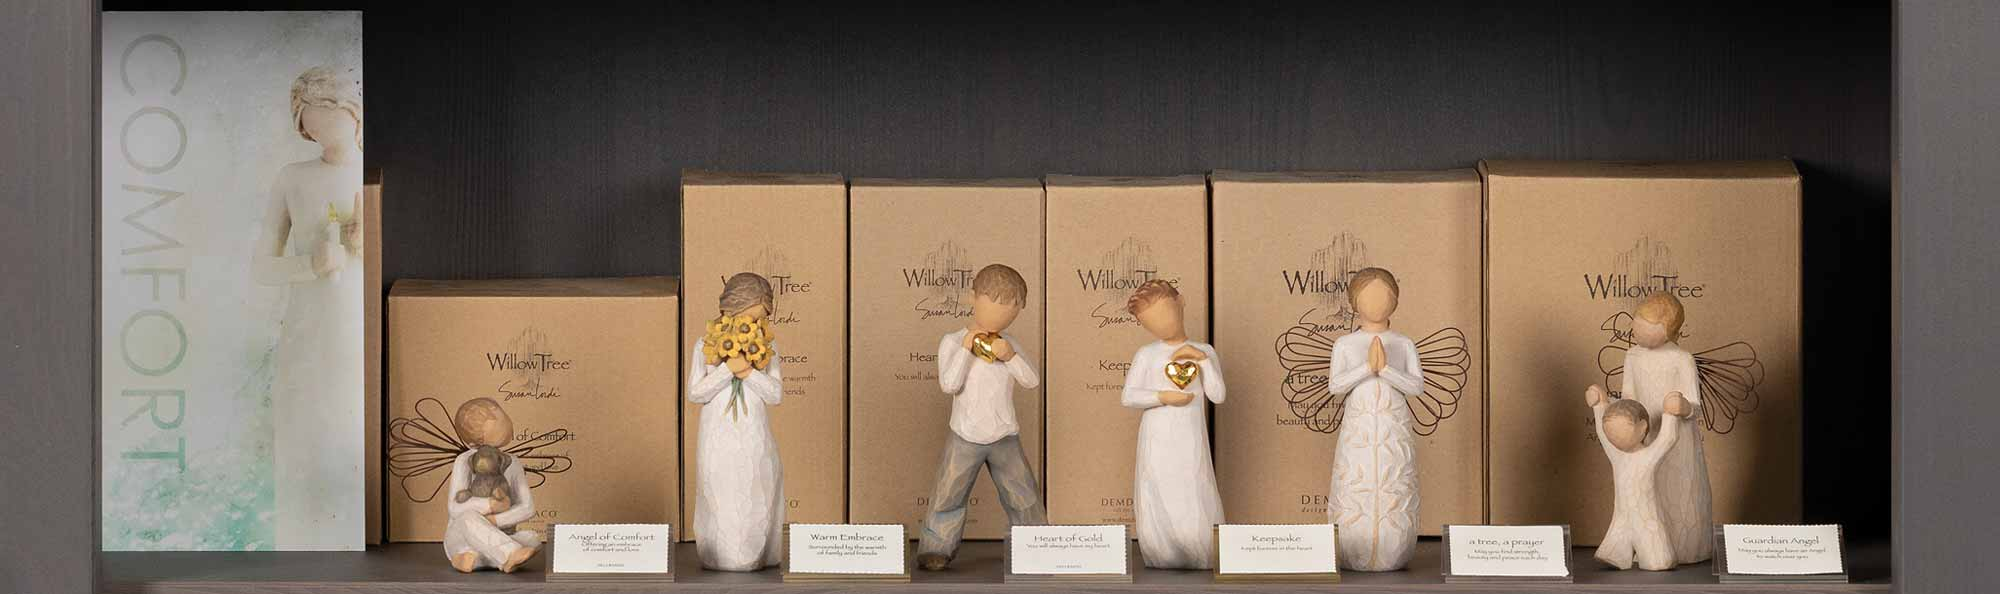 Willow Tree hand carved figures displayed on a store shelf with a sign that says COMFORT